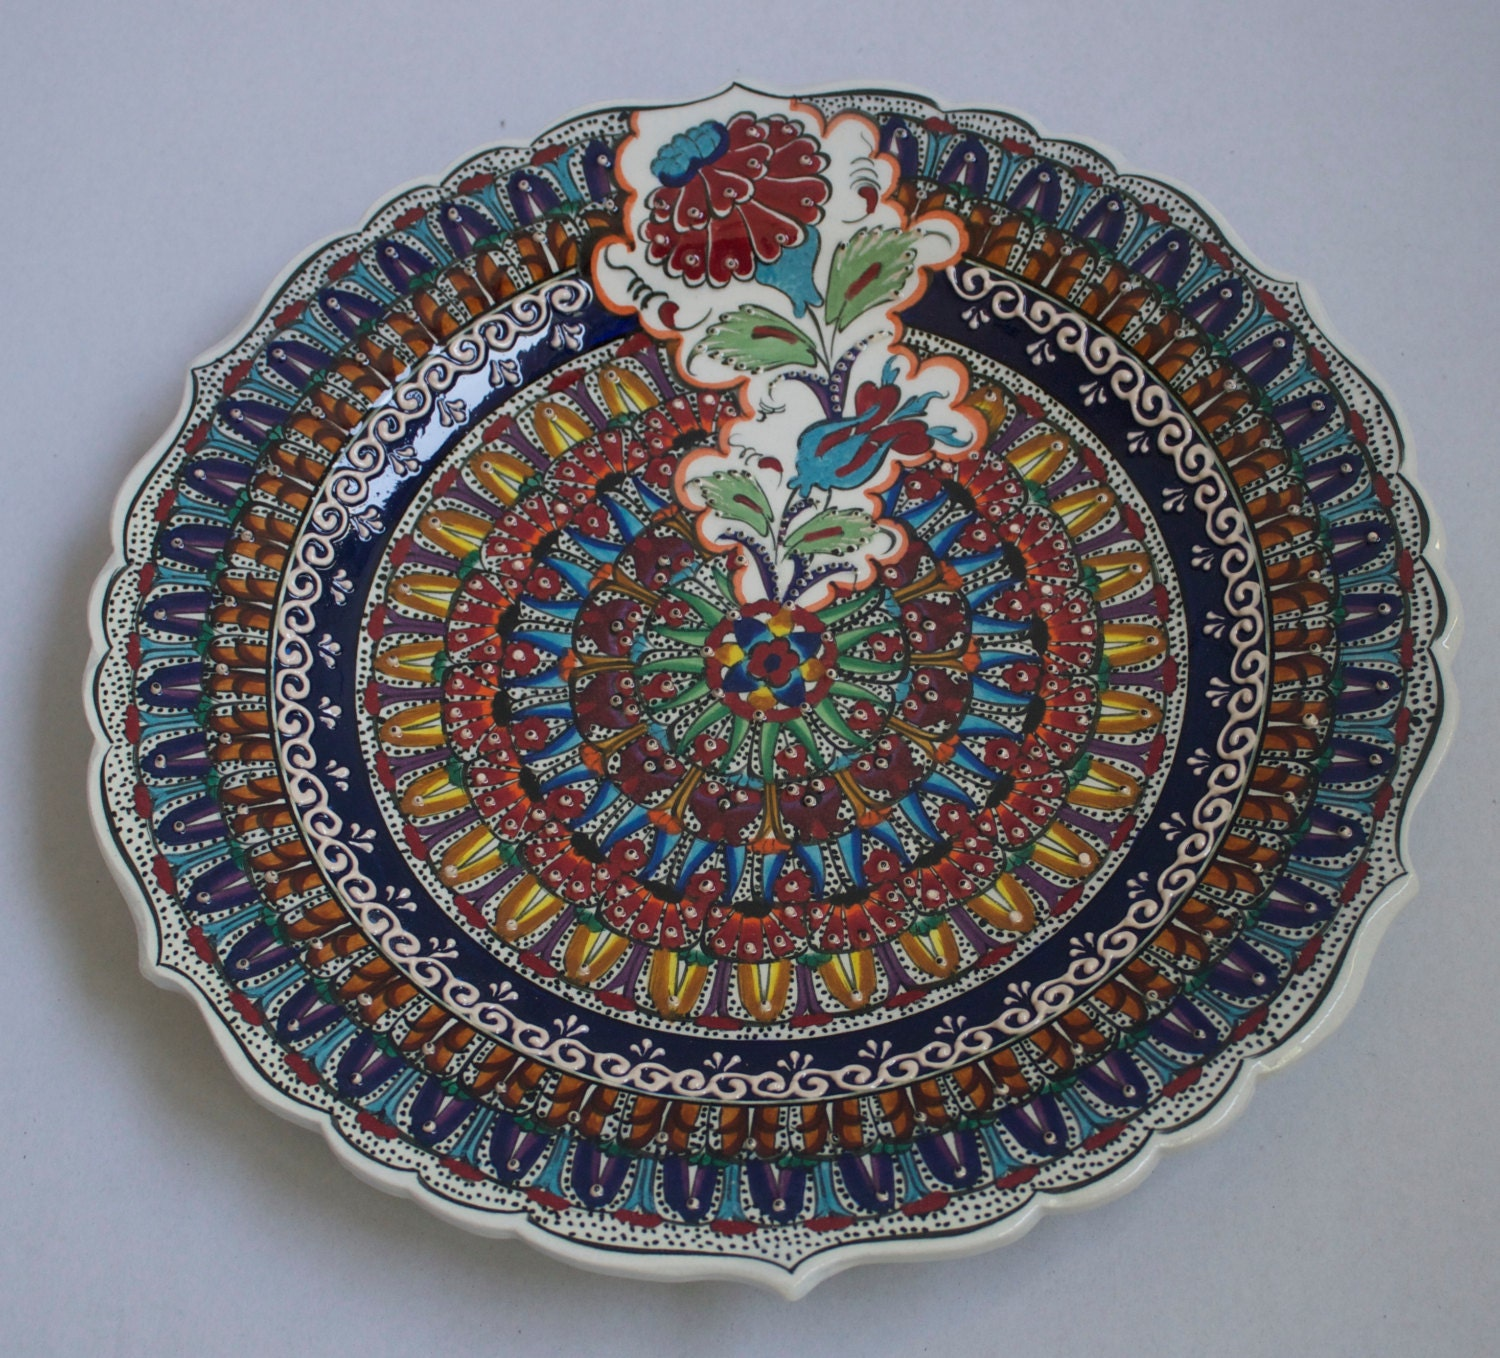 Family Design Hand Made Turkish Ceramic Plate Serving